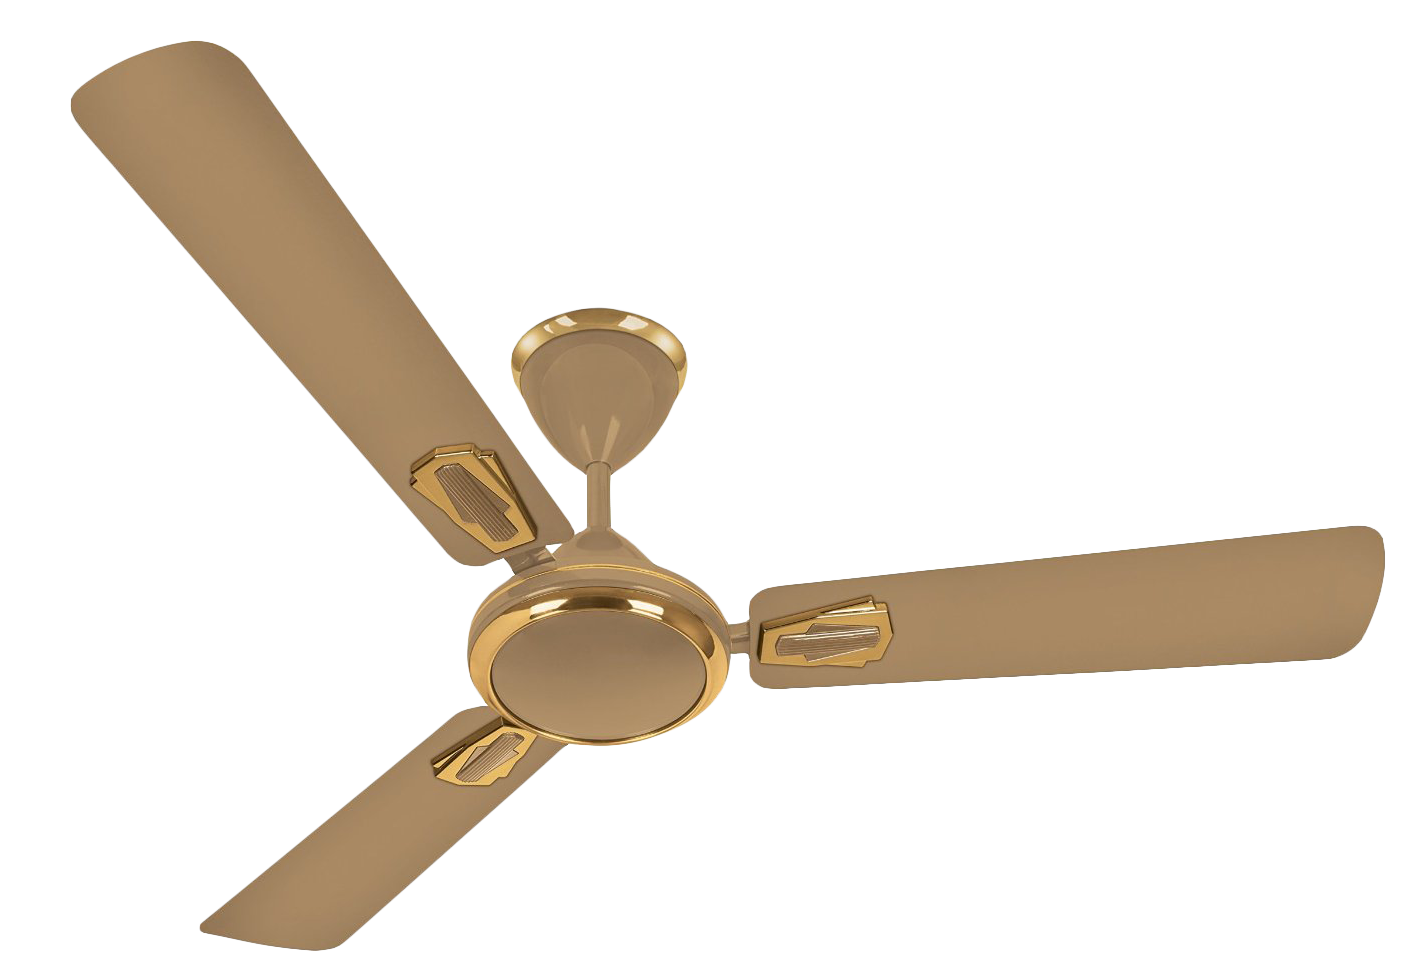 high speed ceiling fan png image pngpix #16918